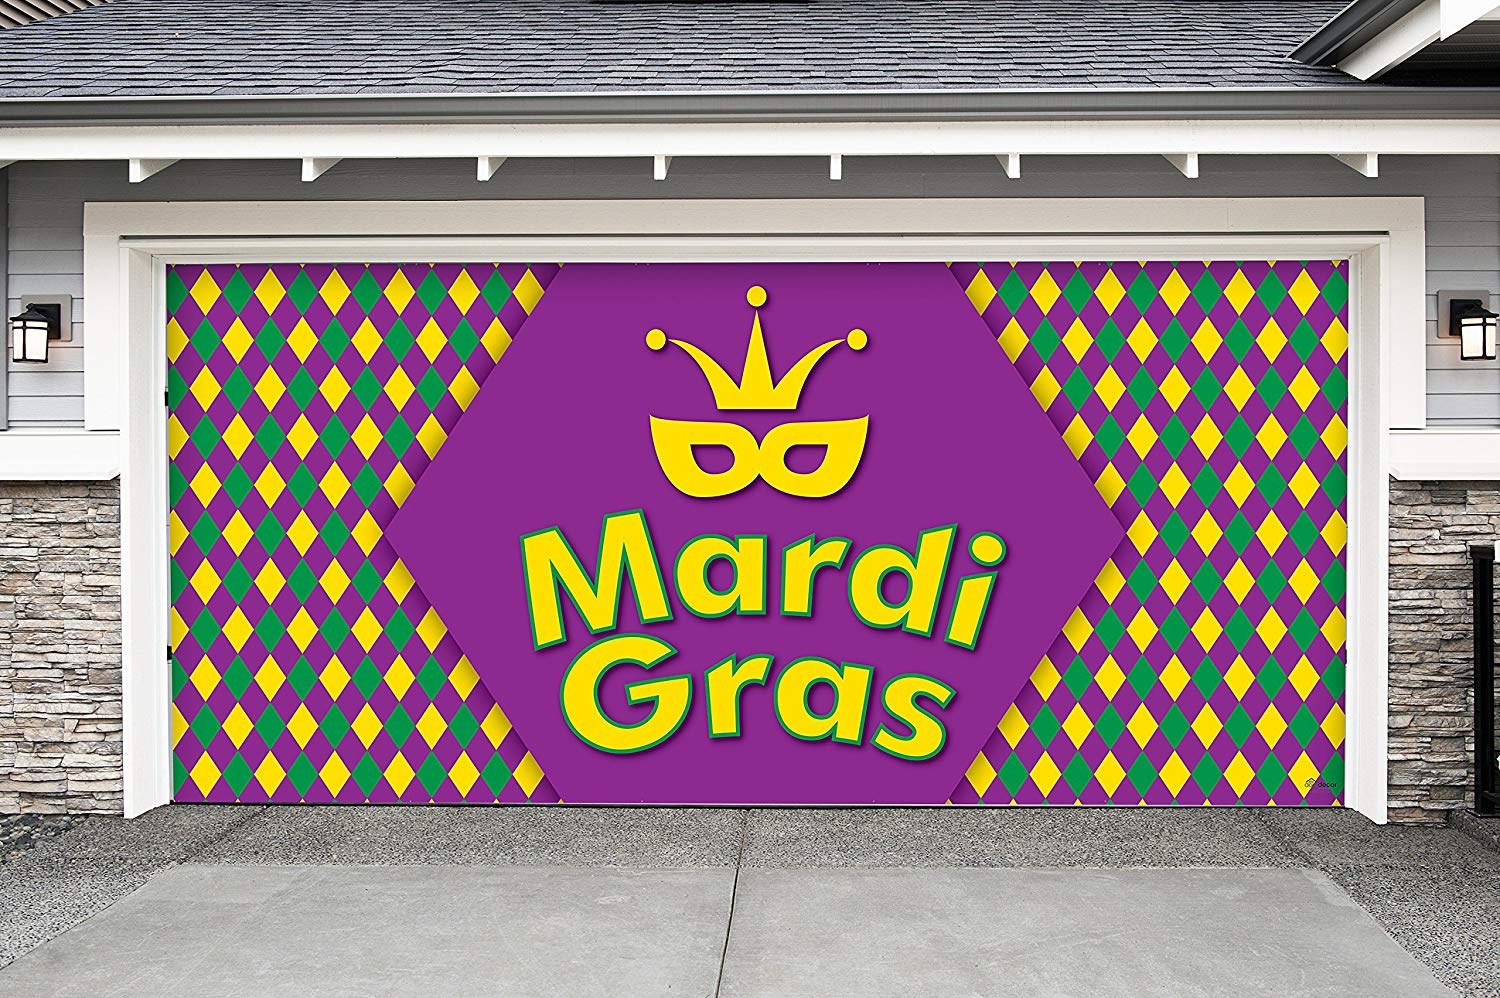 Victory Corps Outdoor Mardi Gras Decorations Garage Door Banner Cover Mural Décoration 7'x16' - Mardi Gras Diamonds - The Original Mardi Gras Supplies Holiday Garage Door Banner Decor